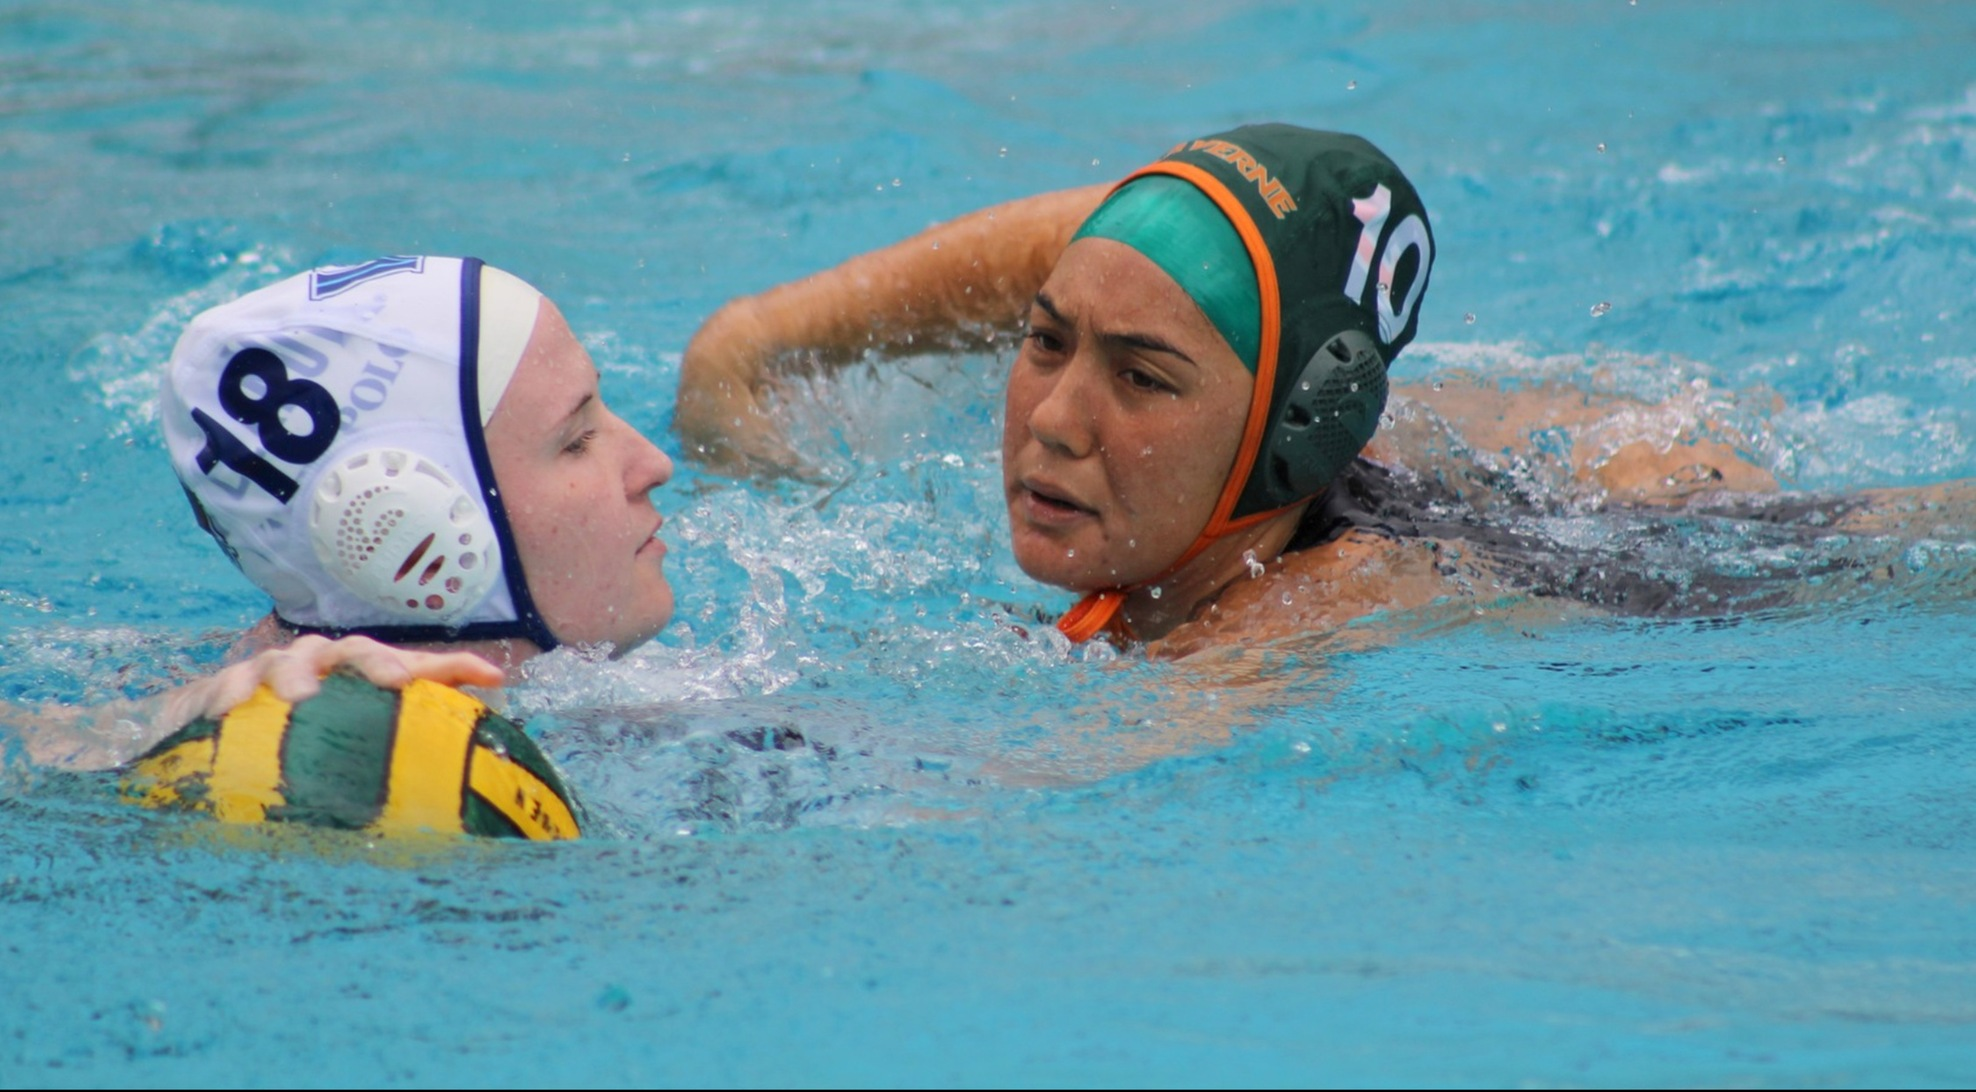 Women's Water Polo adds home game against Washington and Jefferson